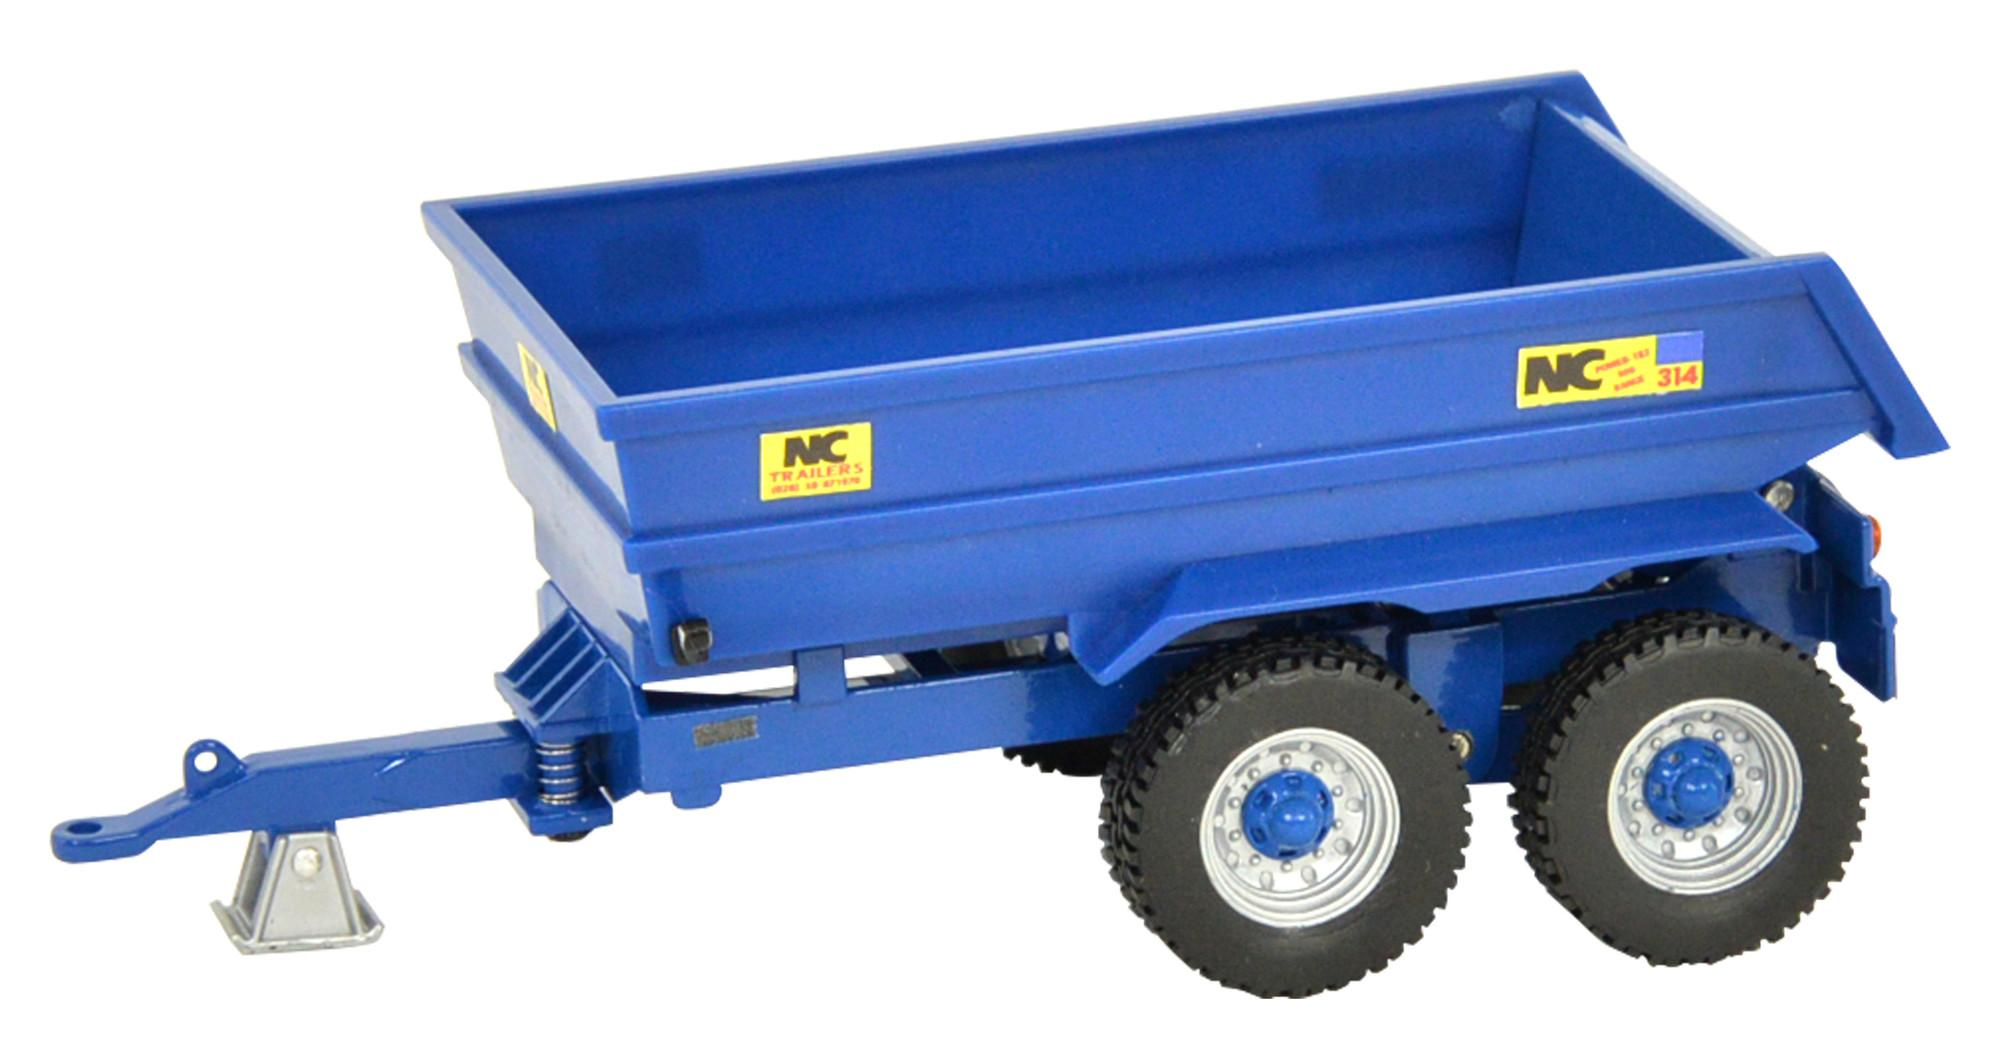 Buy Britains NC Dump Trailer 43182 from Fane Valley Stores